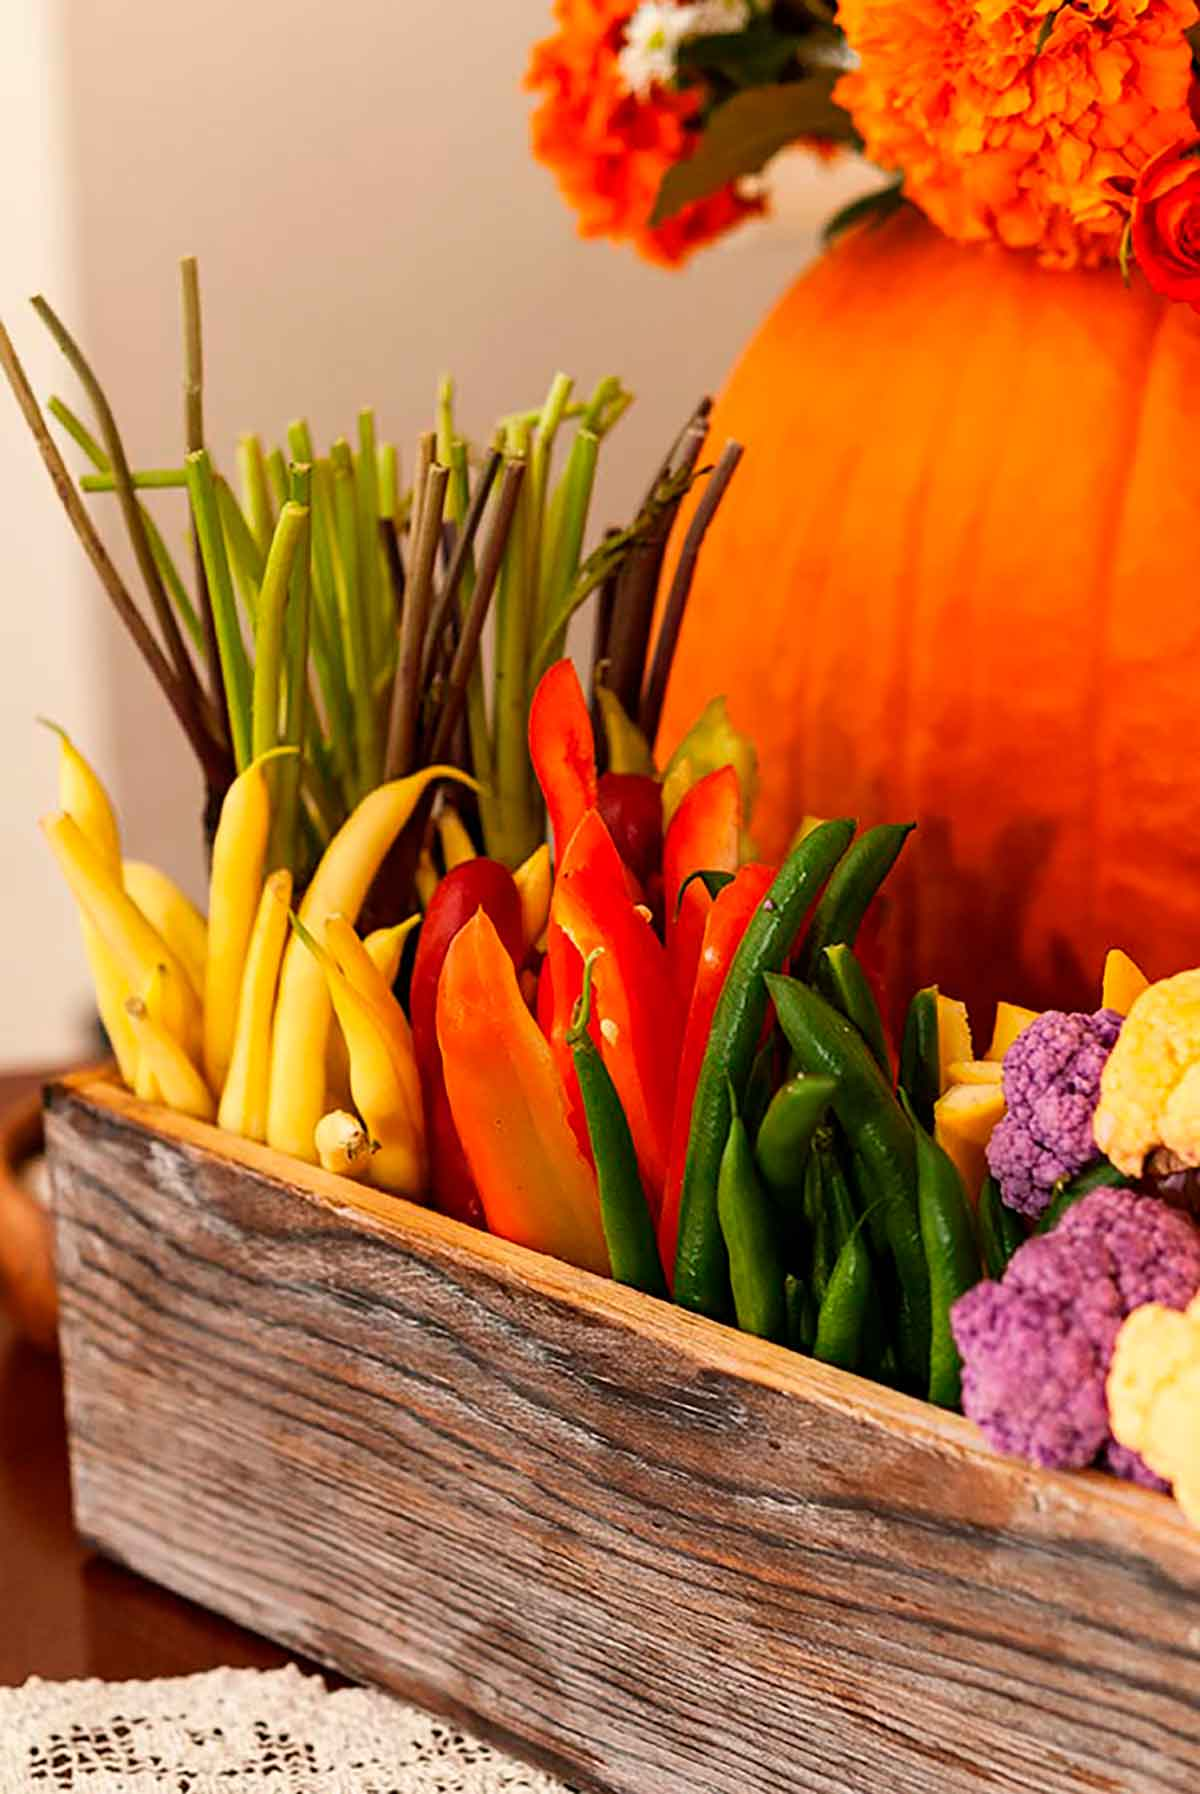 A flower box full of vegetables in front of a pumpkin.